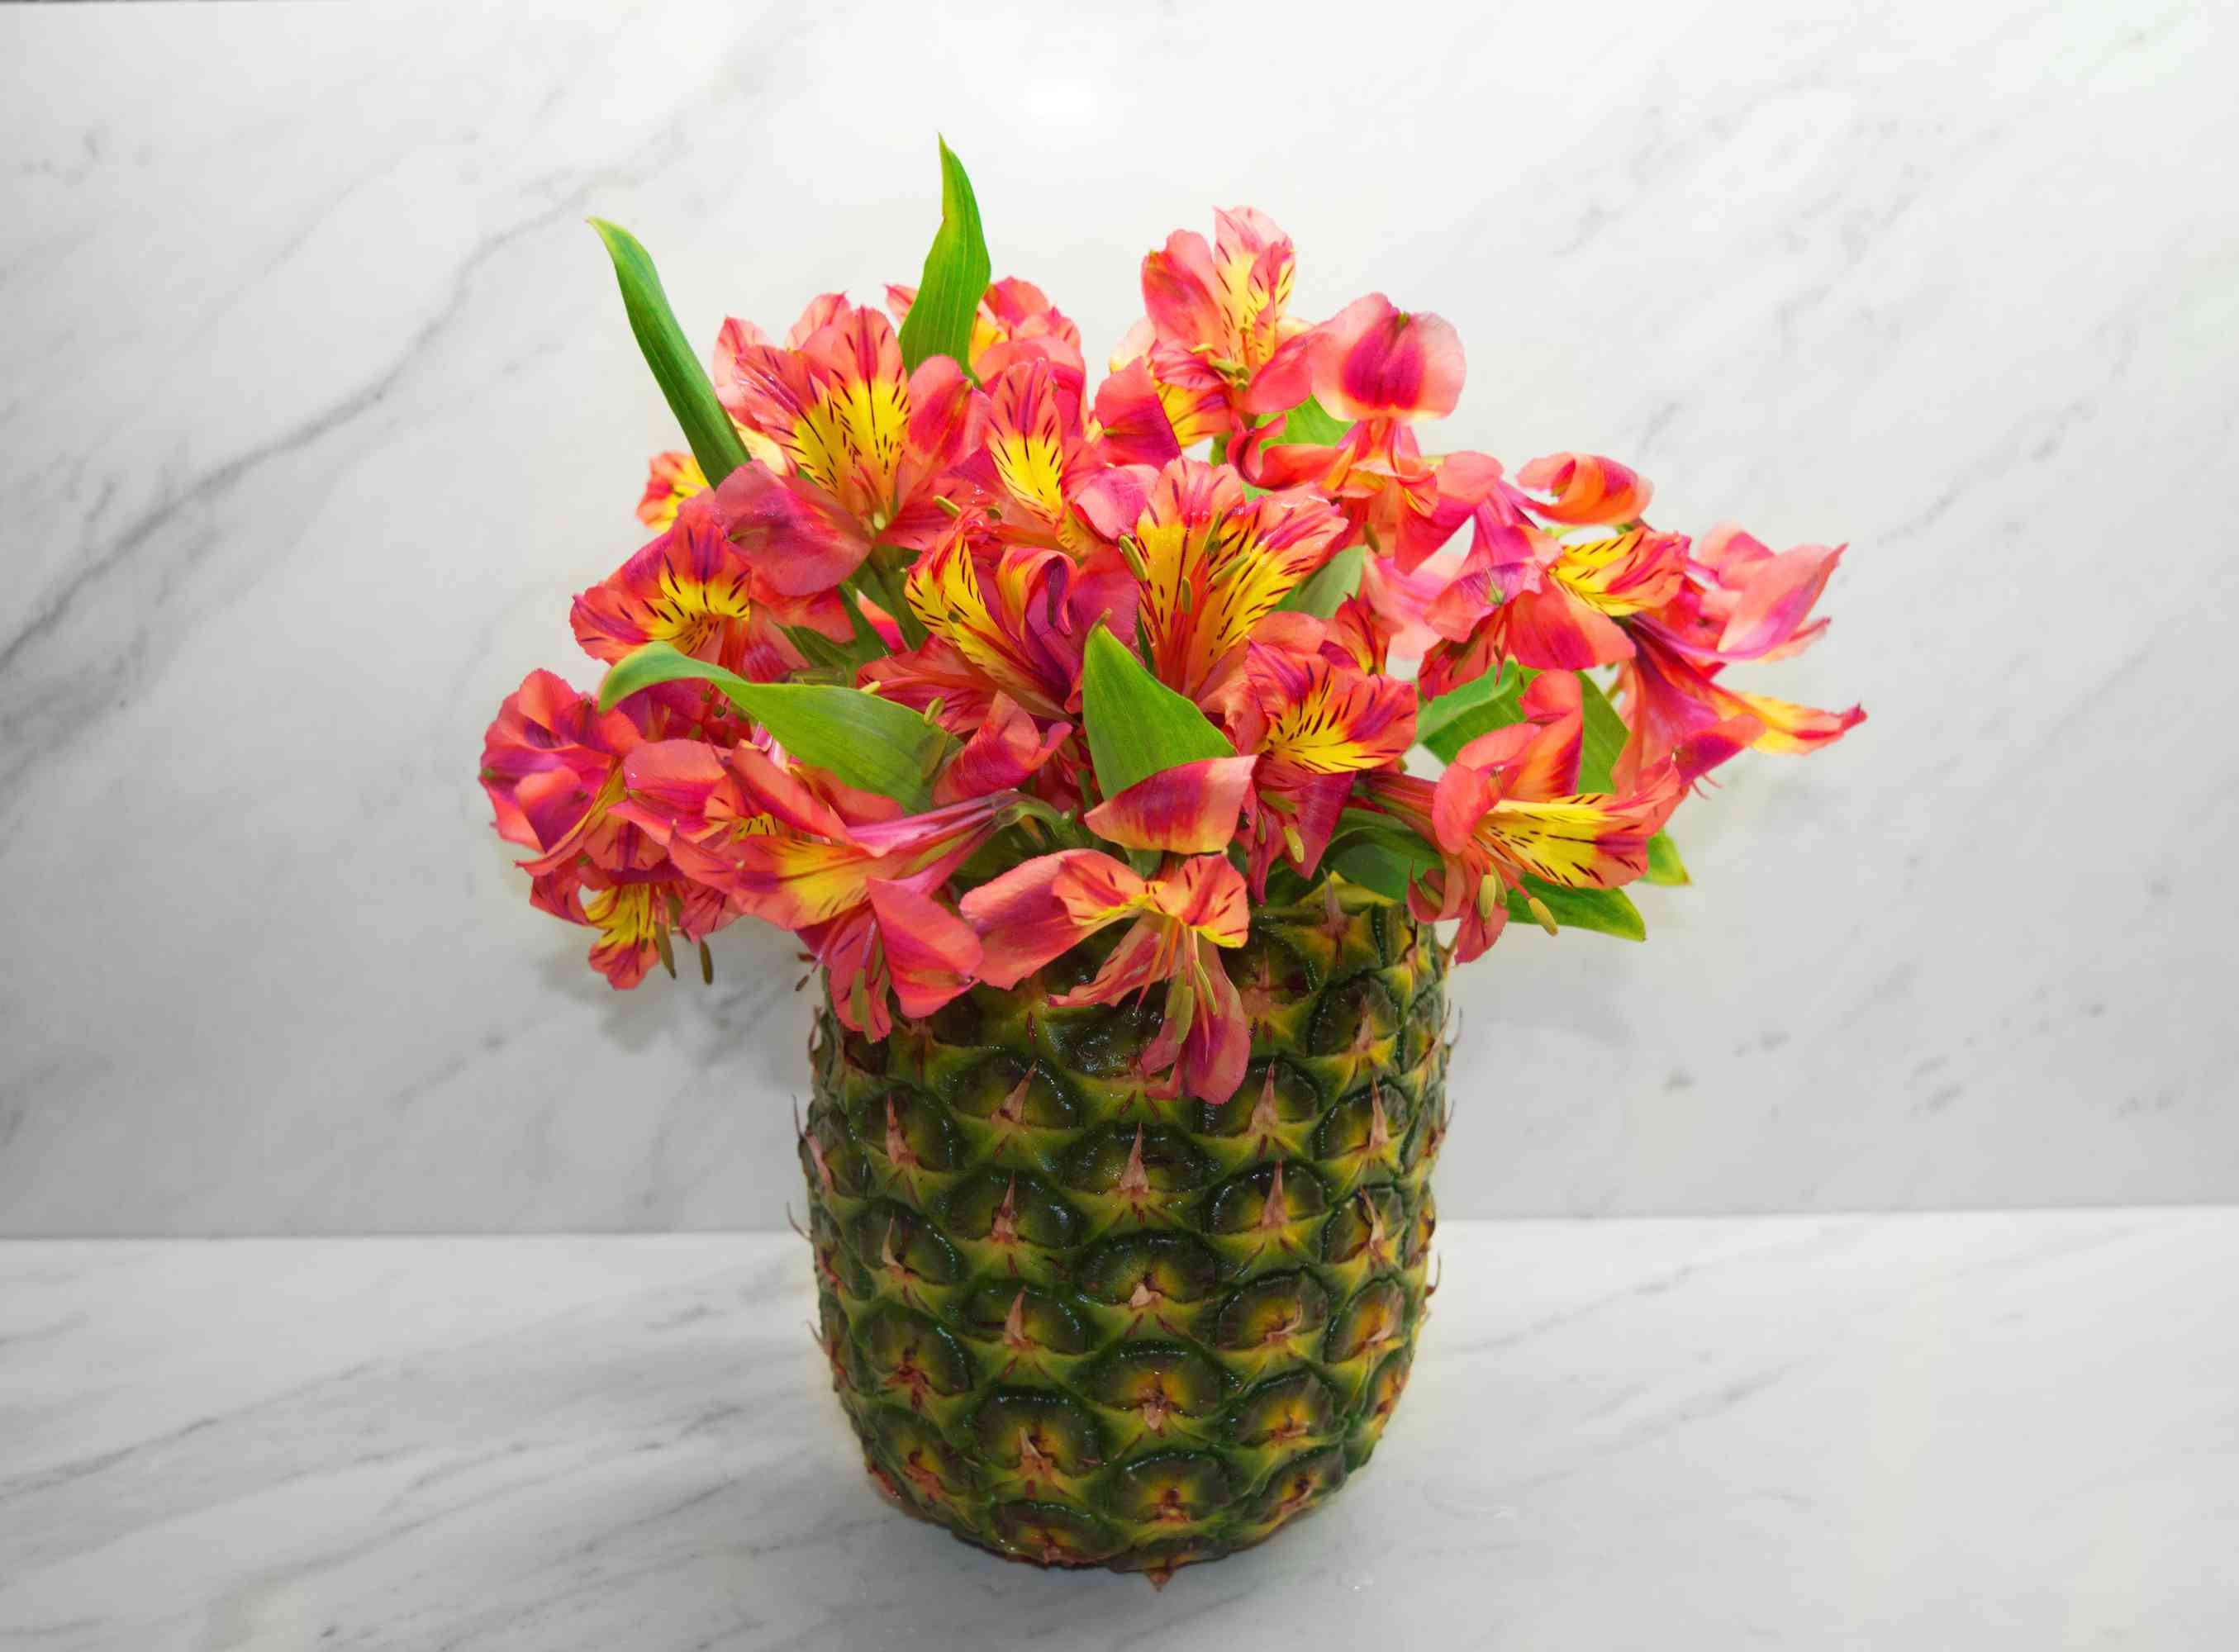 pink and white ceramic vase of diy pineapple vase floral arrangement inside diy pineapple vase 2 56a262c83df78cf77274f3d3